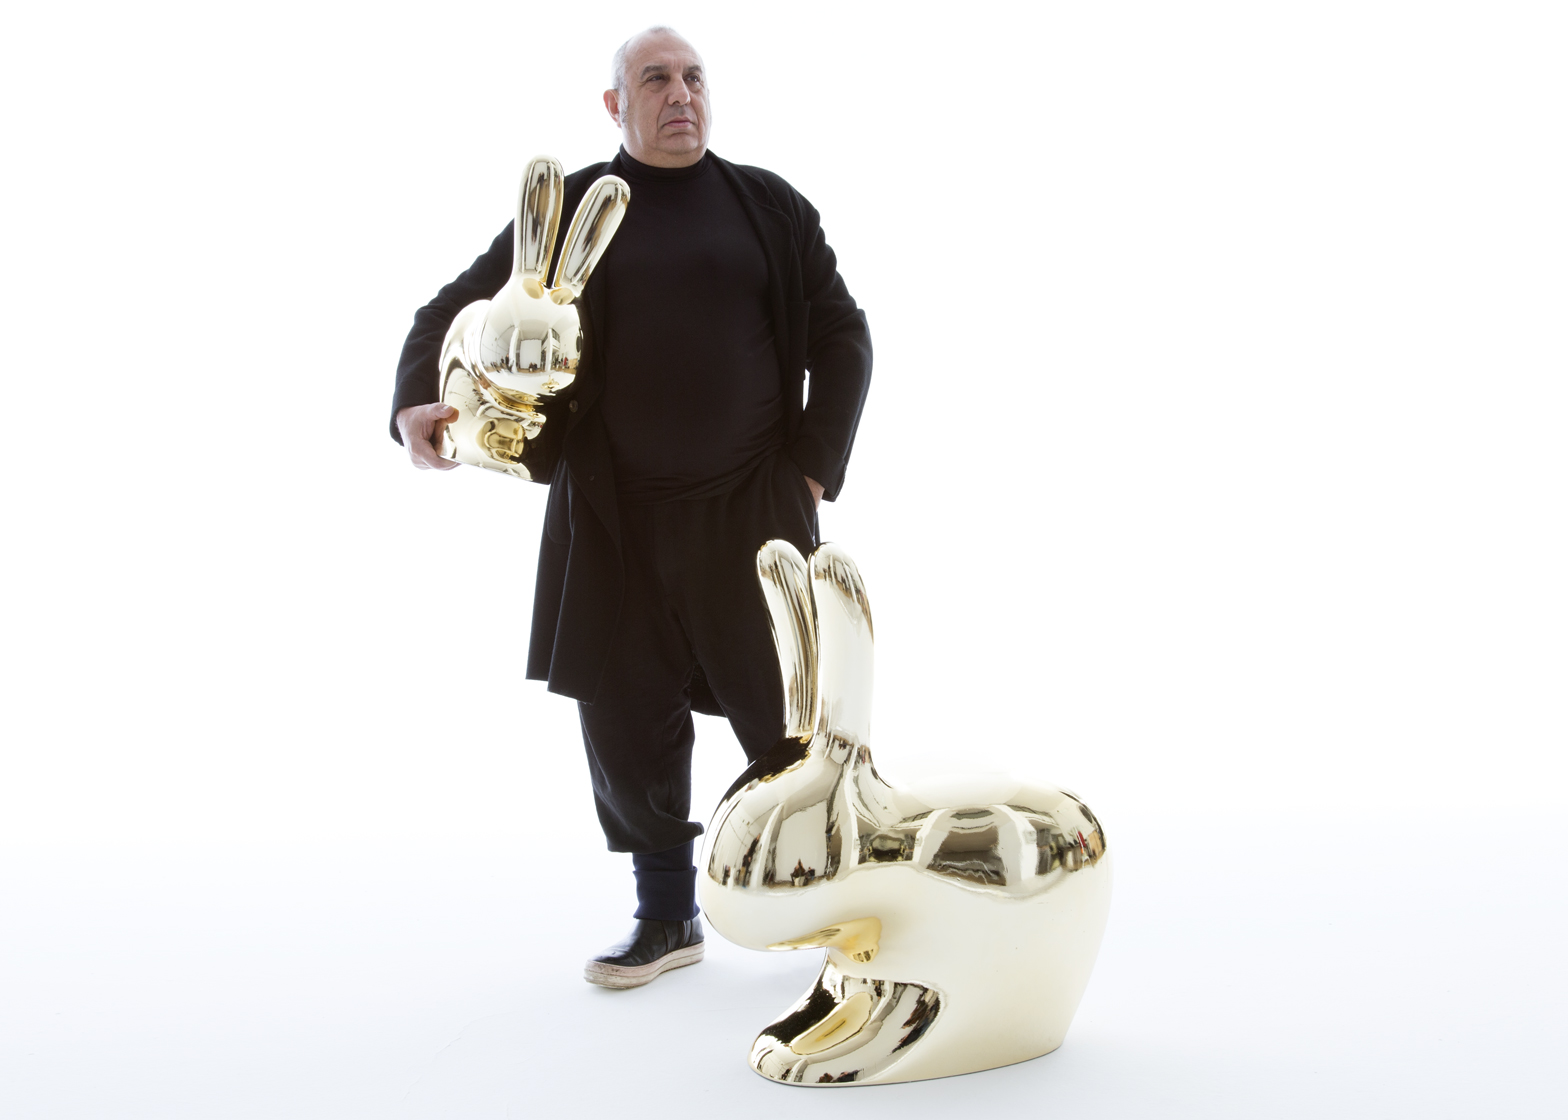 Stefano Giovannoni with his Rabbit chair from the new Qeeboo collection